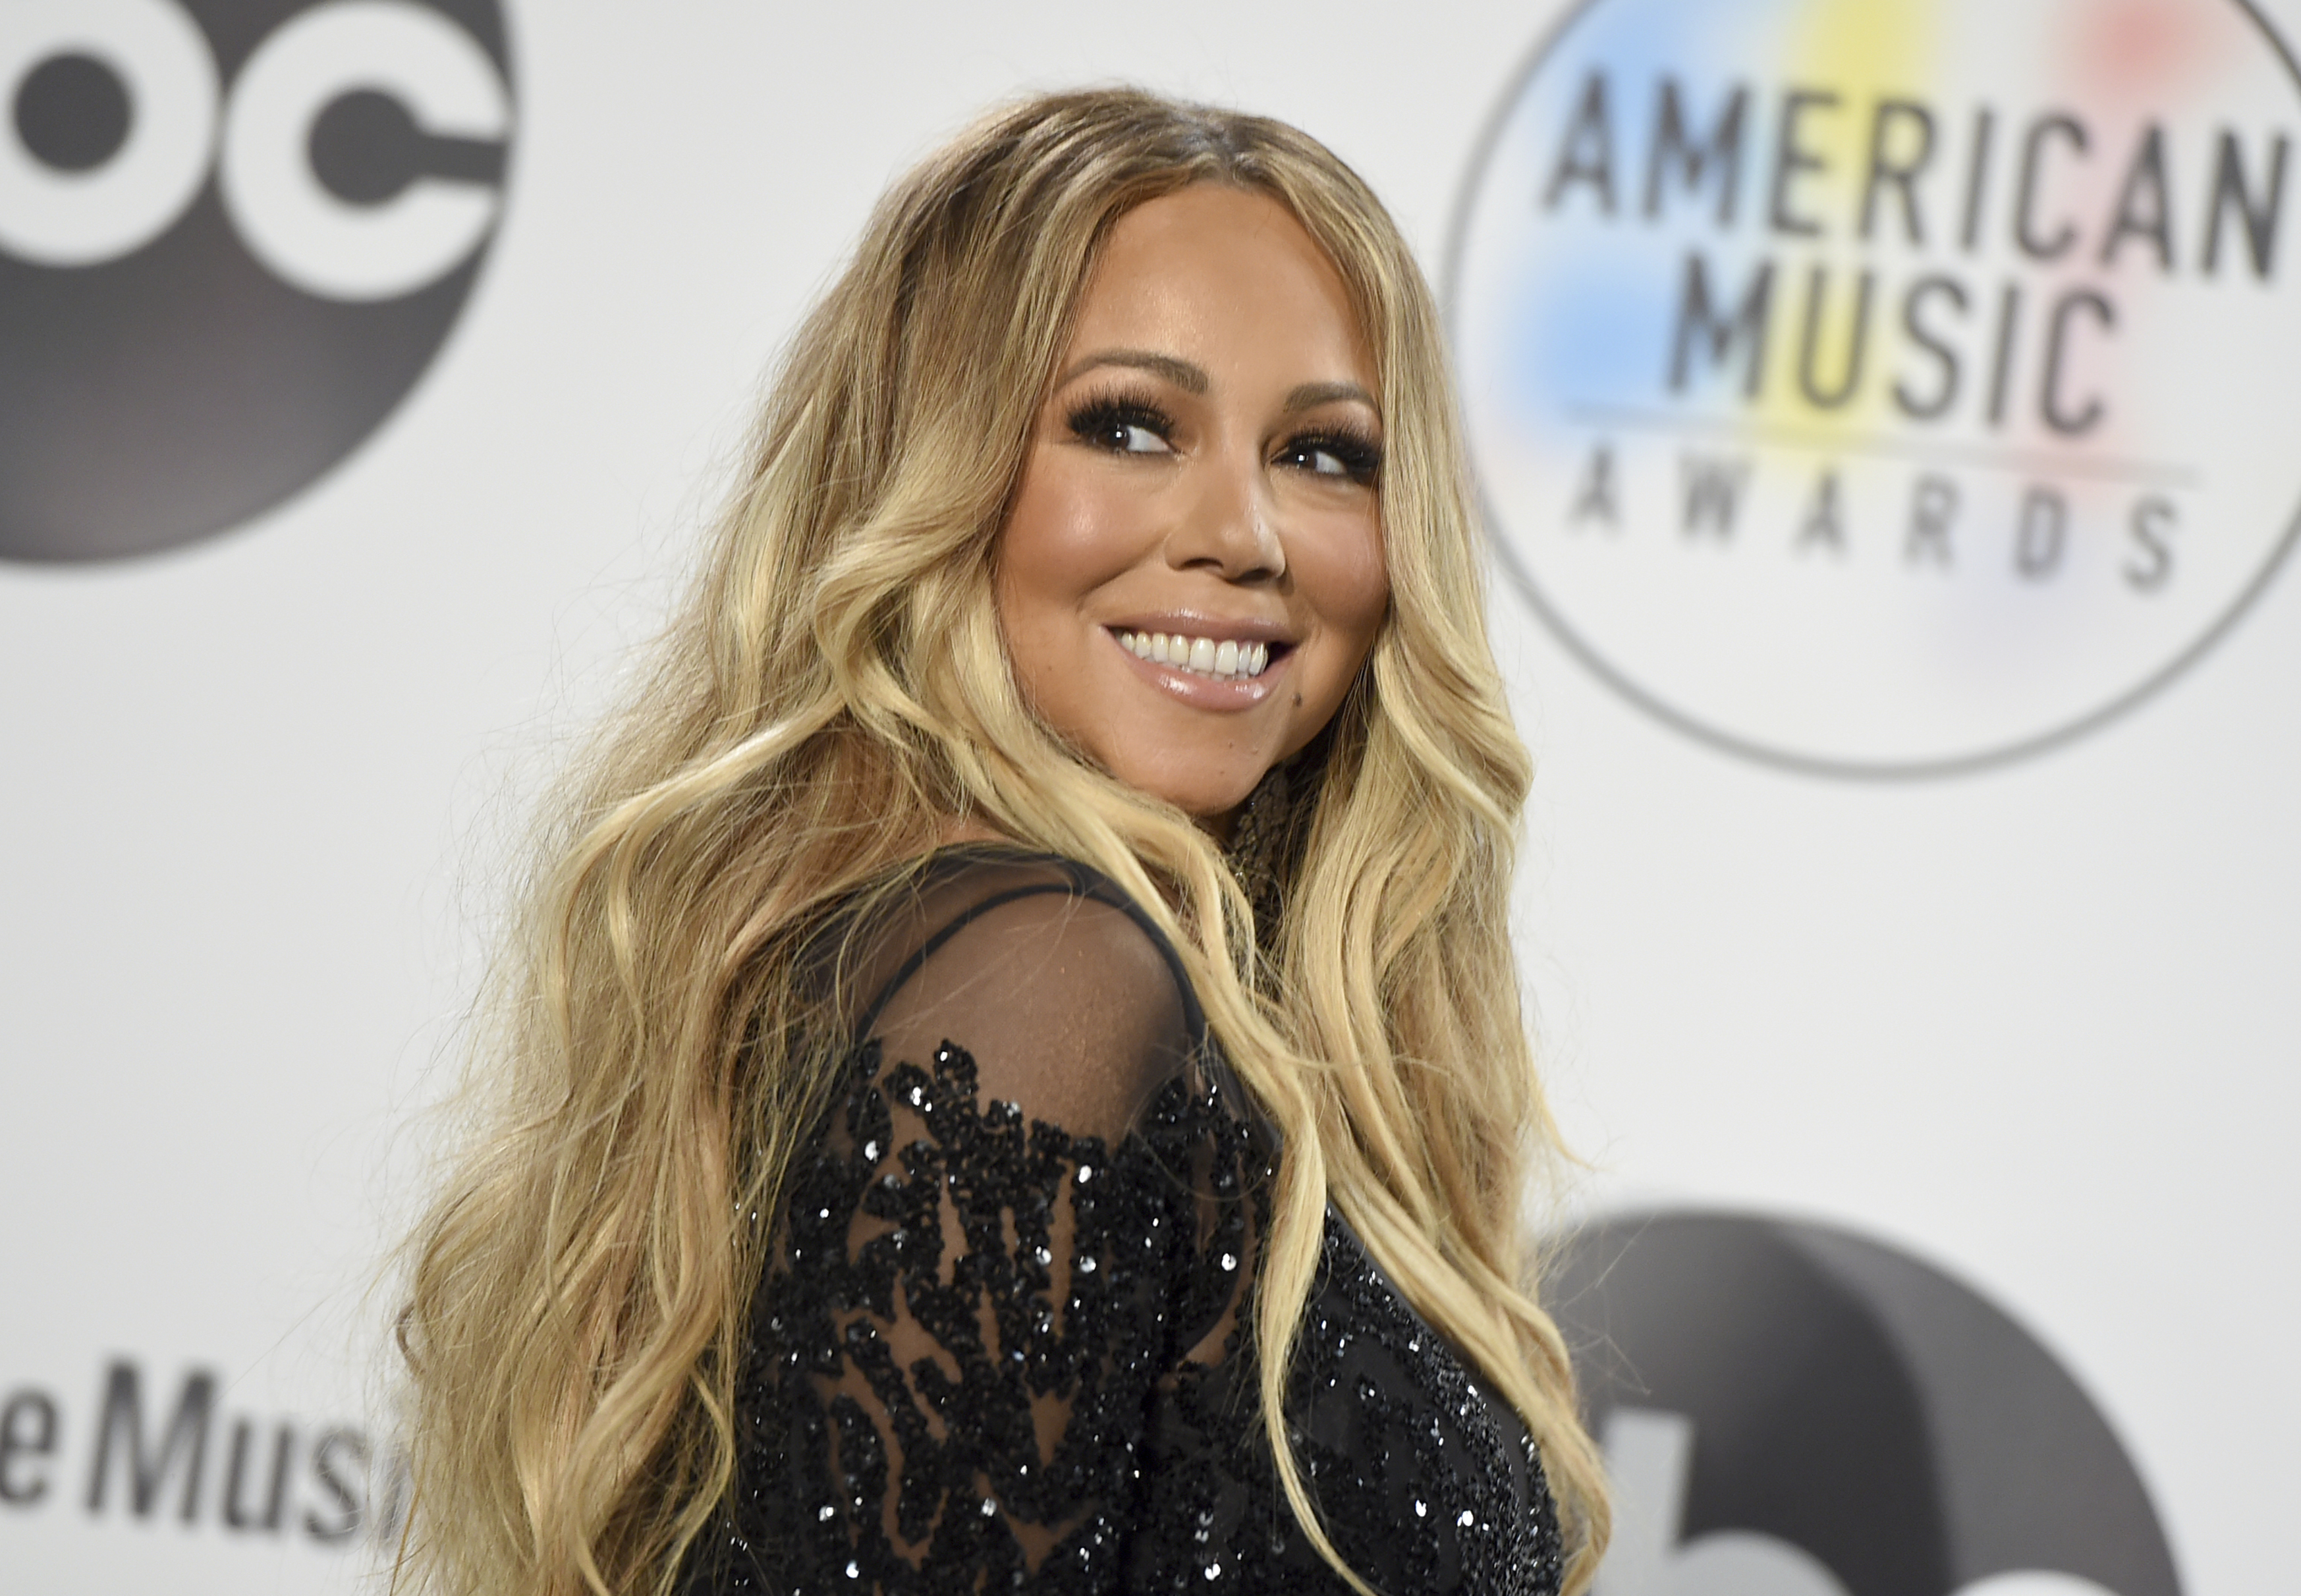 Westlake Legal Group AP18360666533802 Mariah Carey's 'All I Want For Christmas Is You' reaches No. 1 on Billboard chart for first time Melissa Roberto fox-news/person/mariah-carey fox news fnc/entertainment fnc b066c4f6-23c2-5054-babe-08f80578d7a5 article